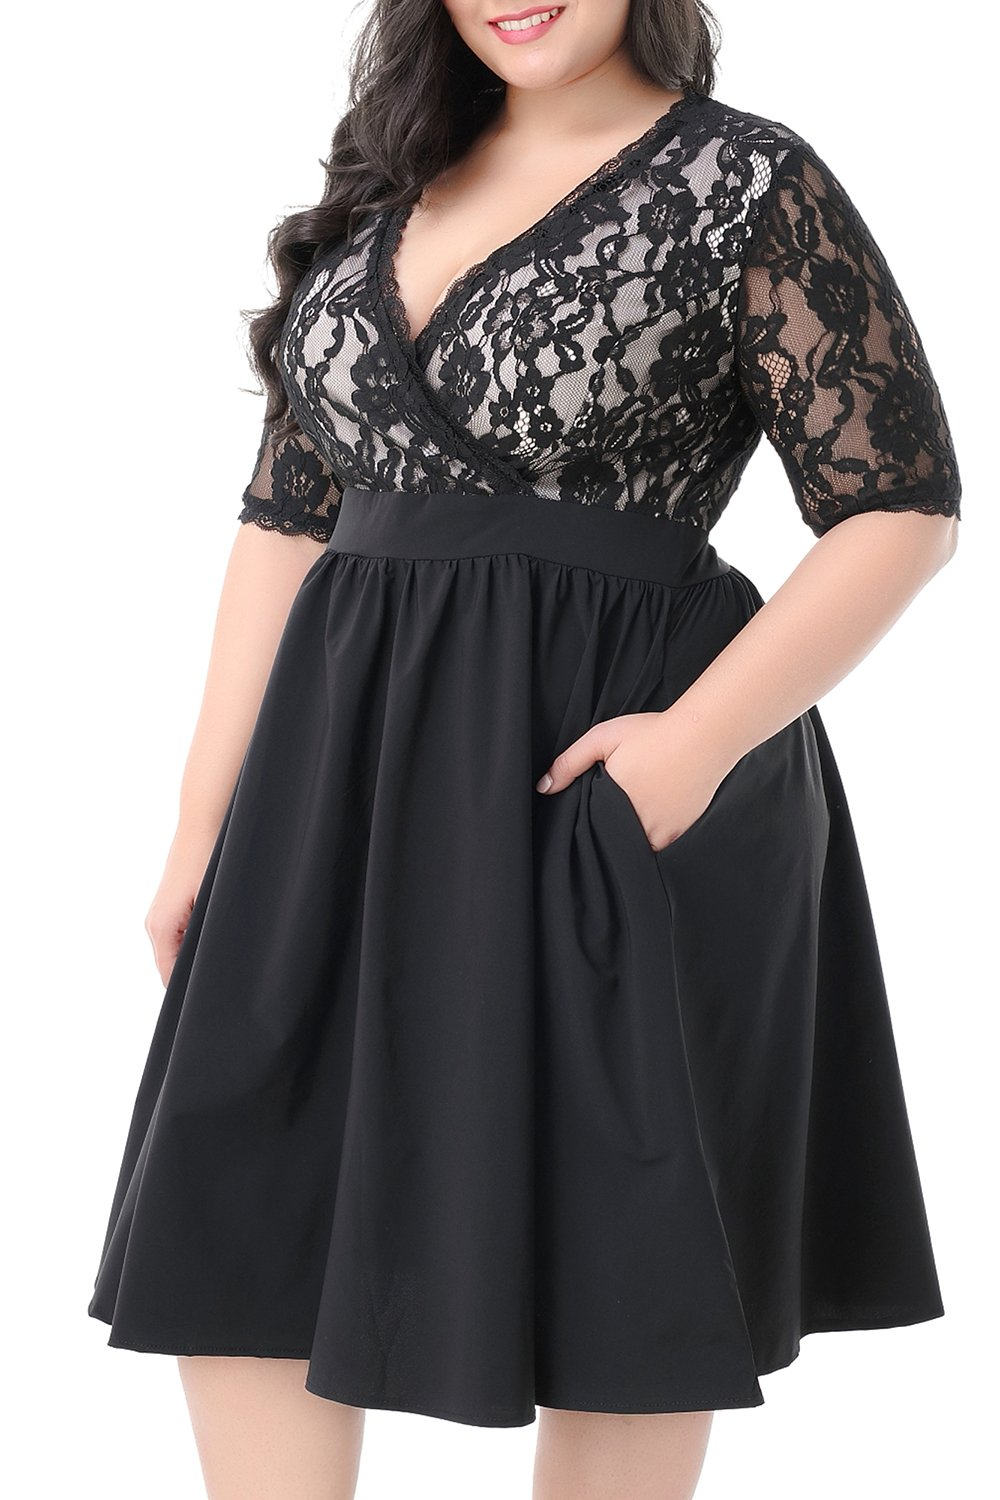 Plus Size Dresses - Women's Stretch Lined Plus Size Lace Shift Dress Knee Length With Scalloped Hem And Cuff